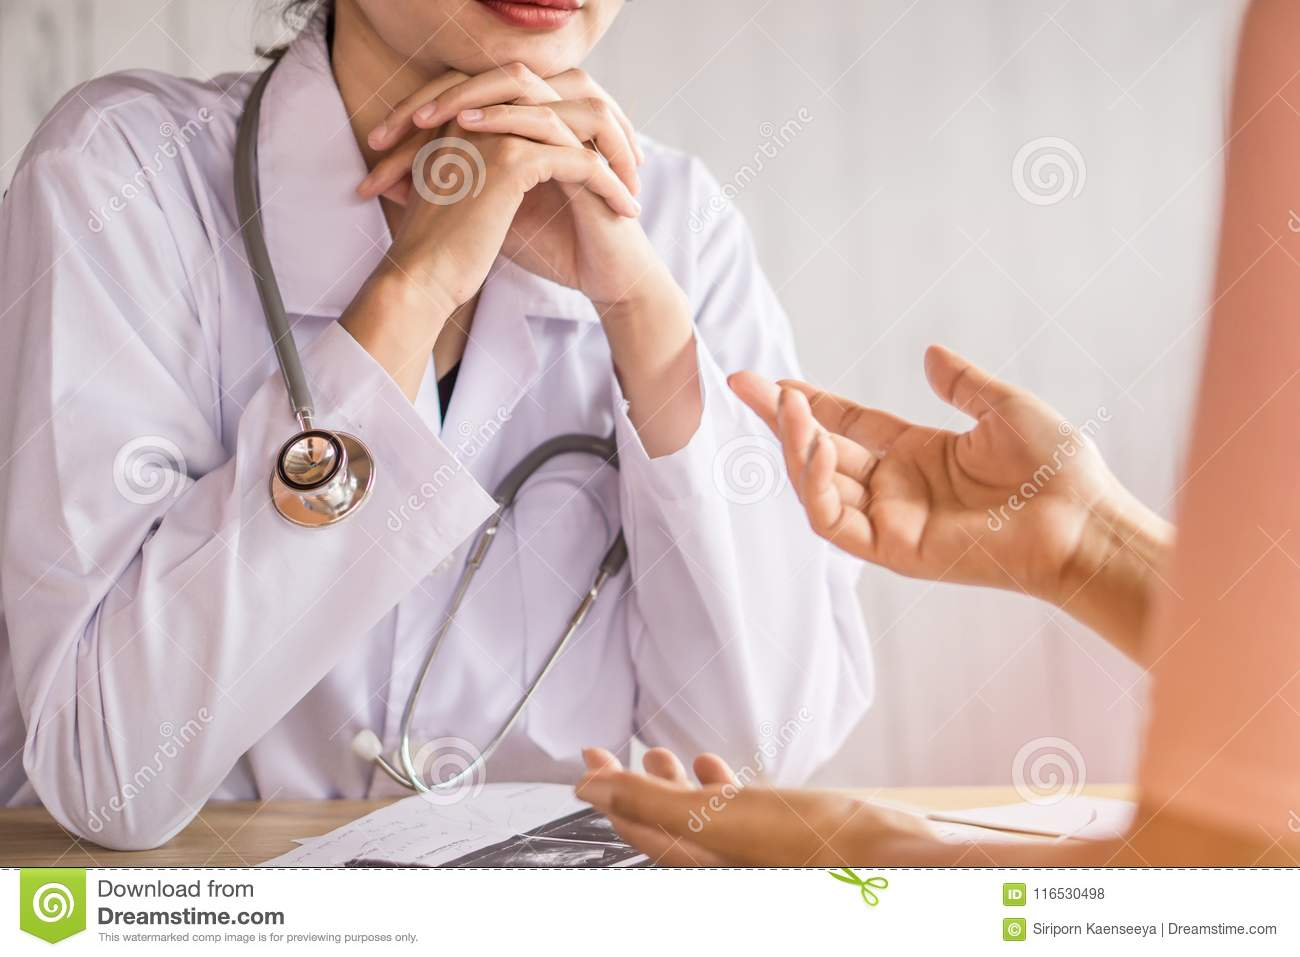 Female doctor listening to depressed patient talking about health problem